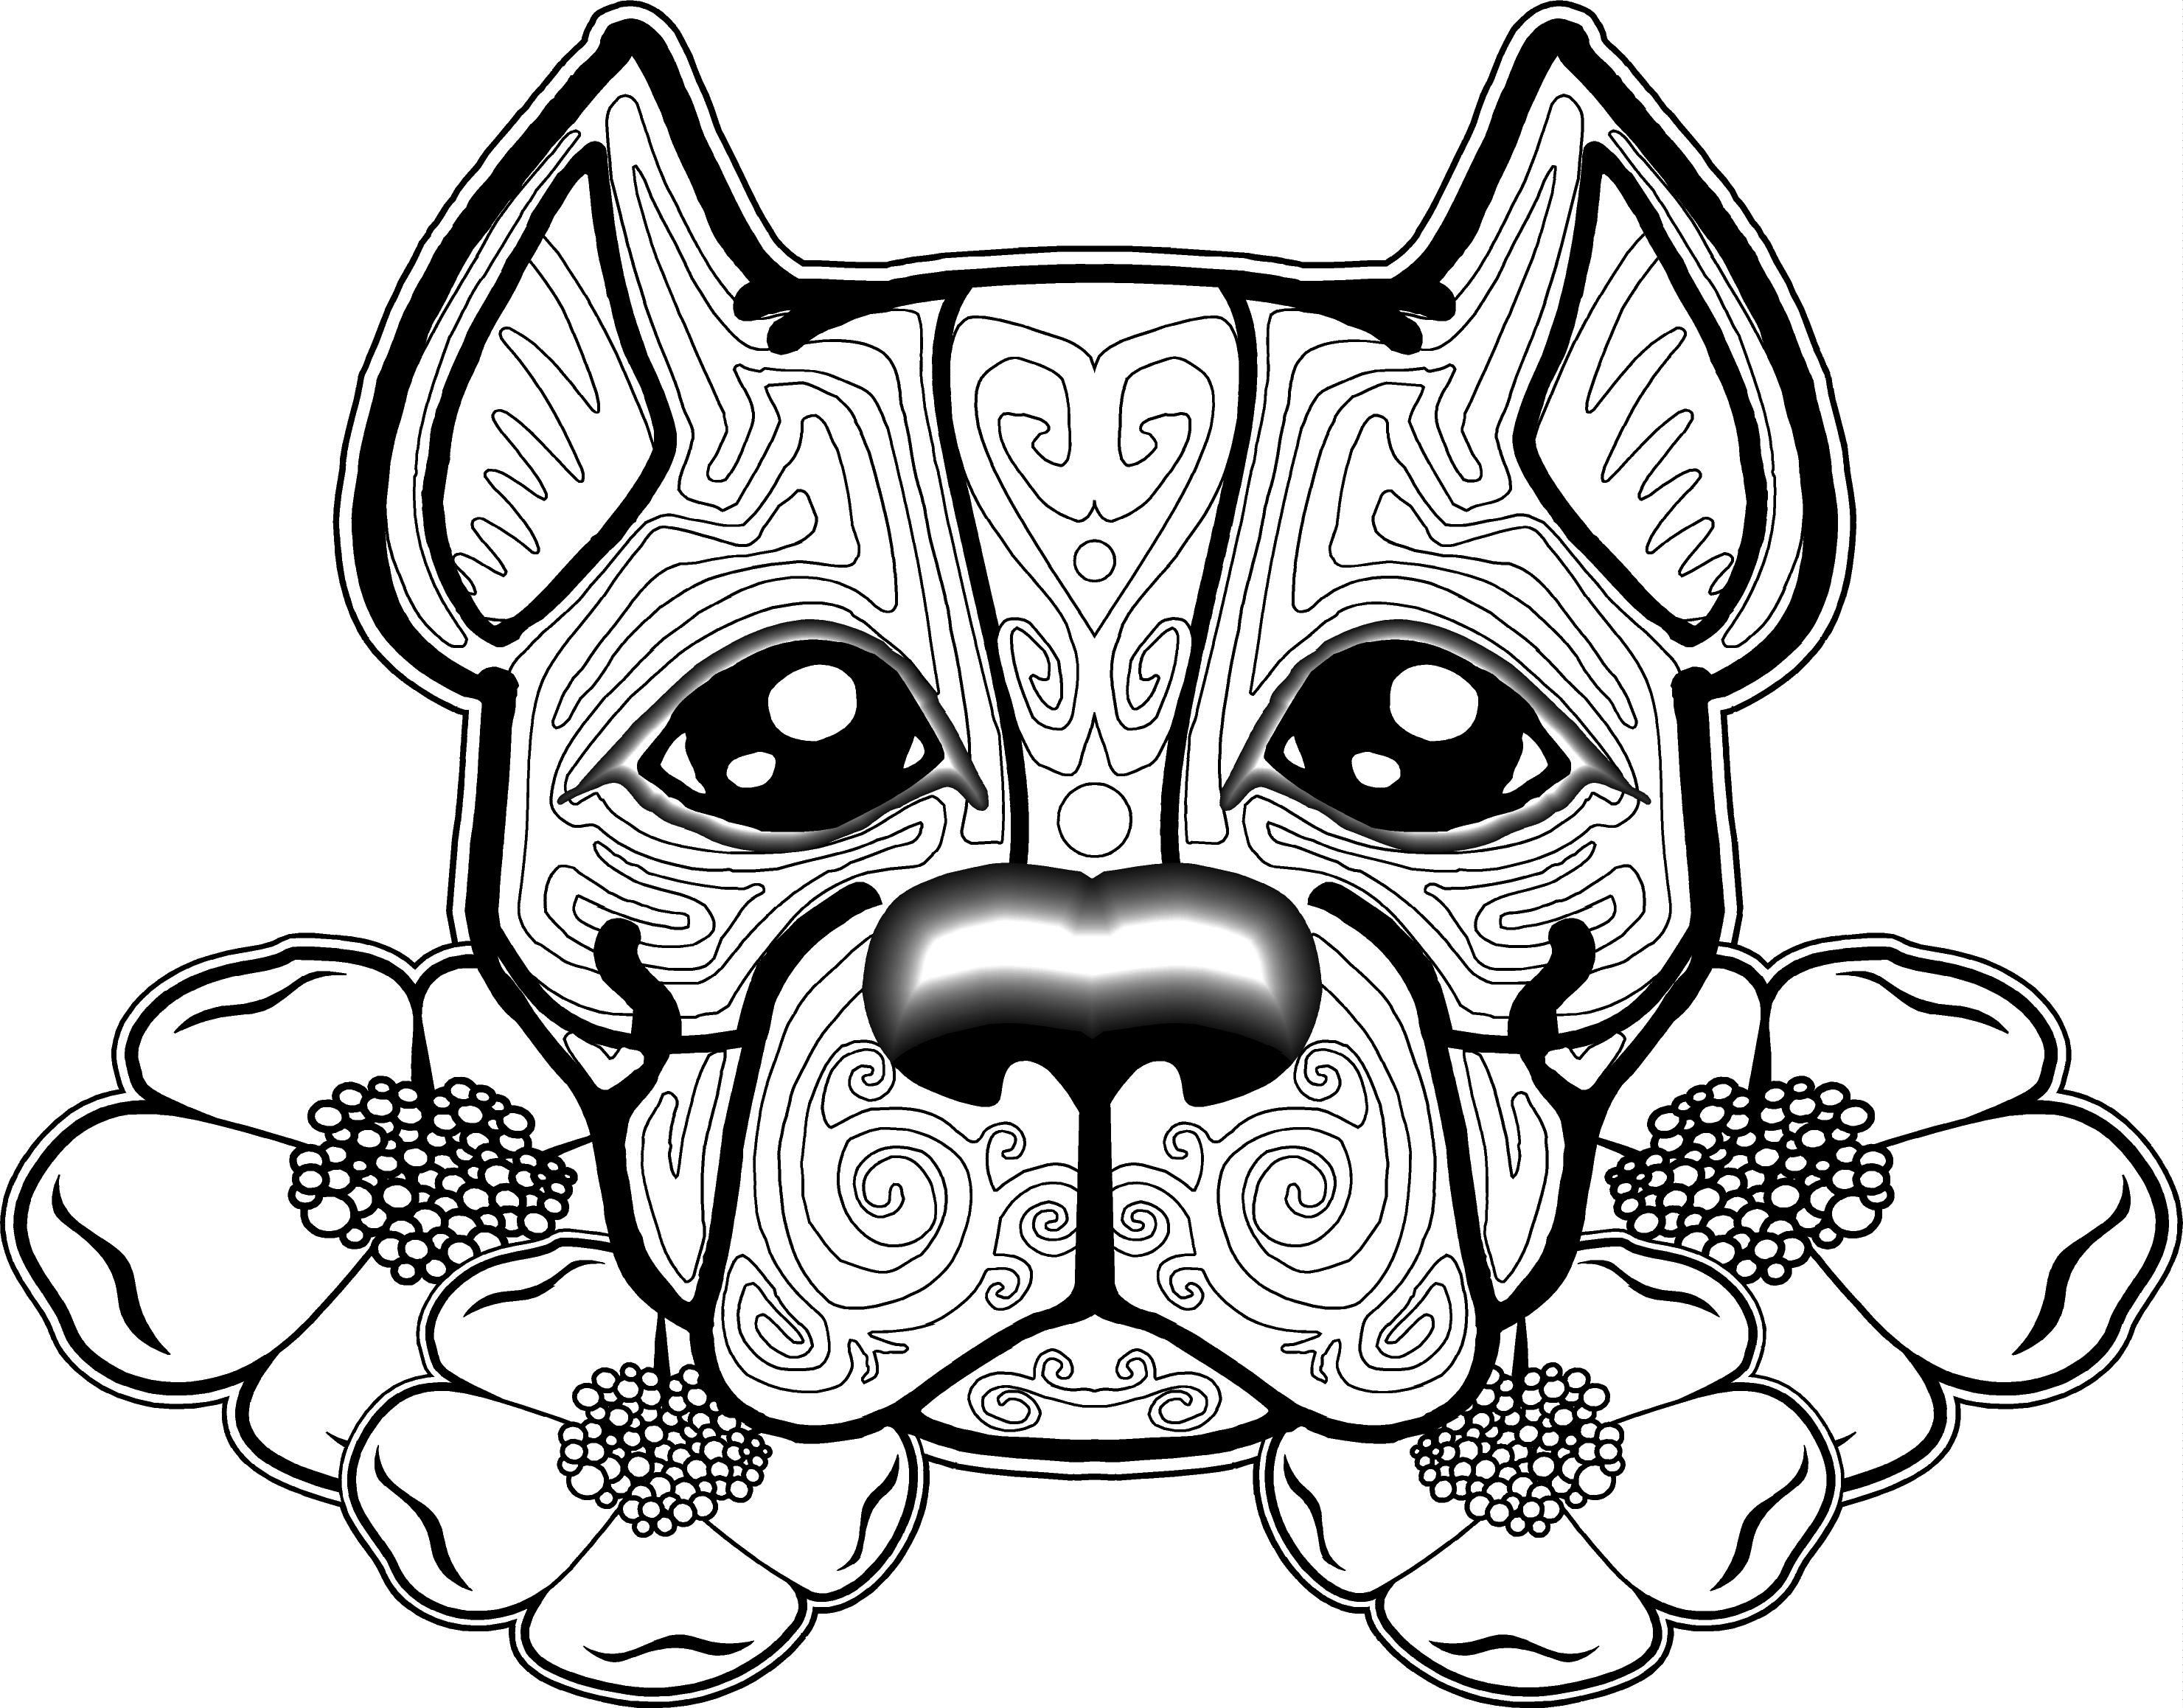 free dog coloring pages free dog coloring pages for adults | FREE Printable Coloring Pages  free dog coloring pages